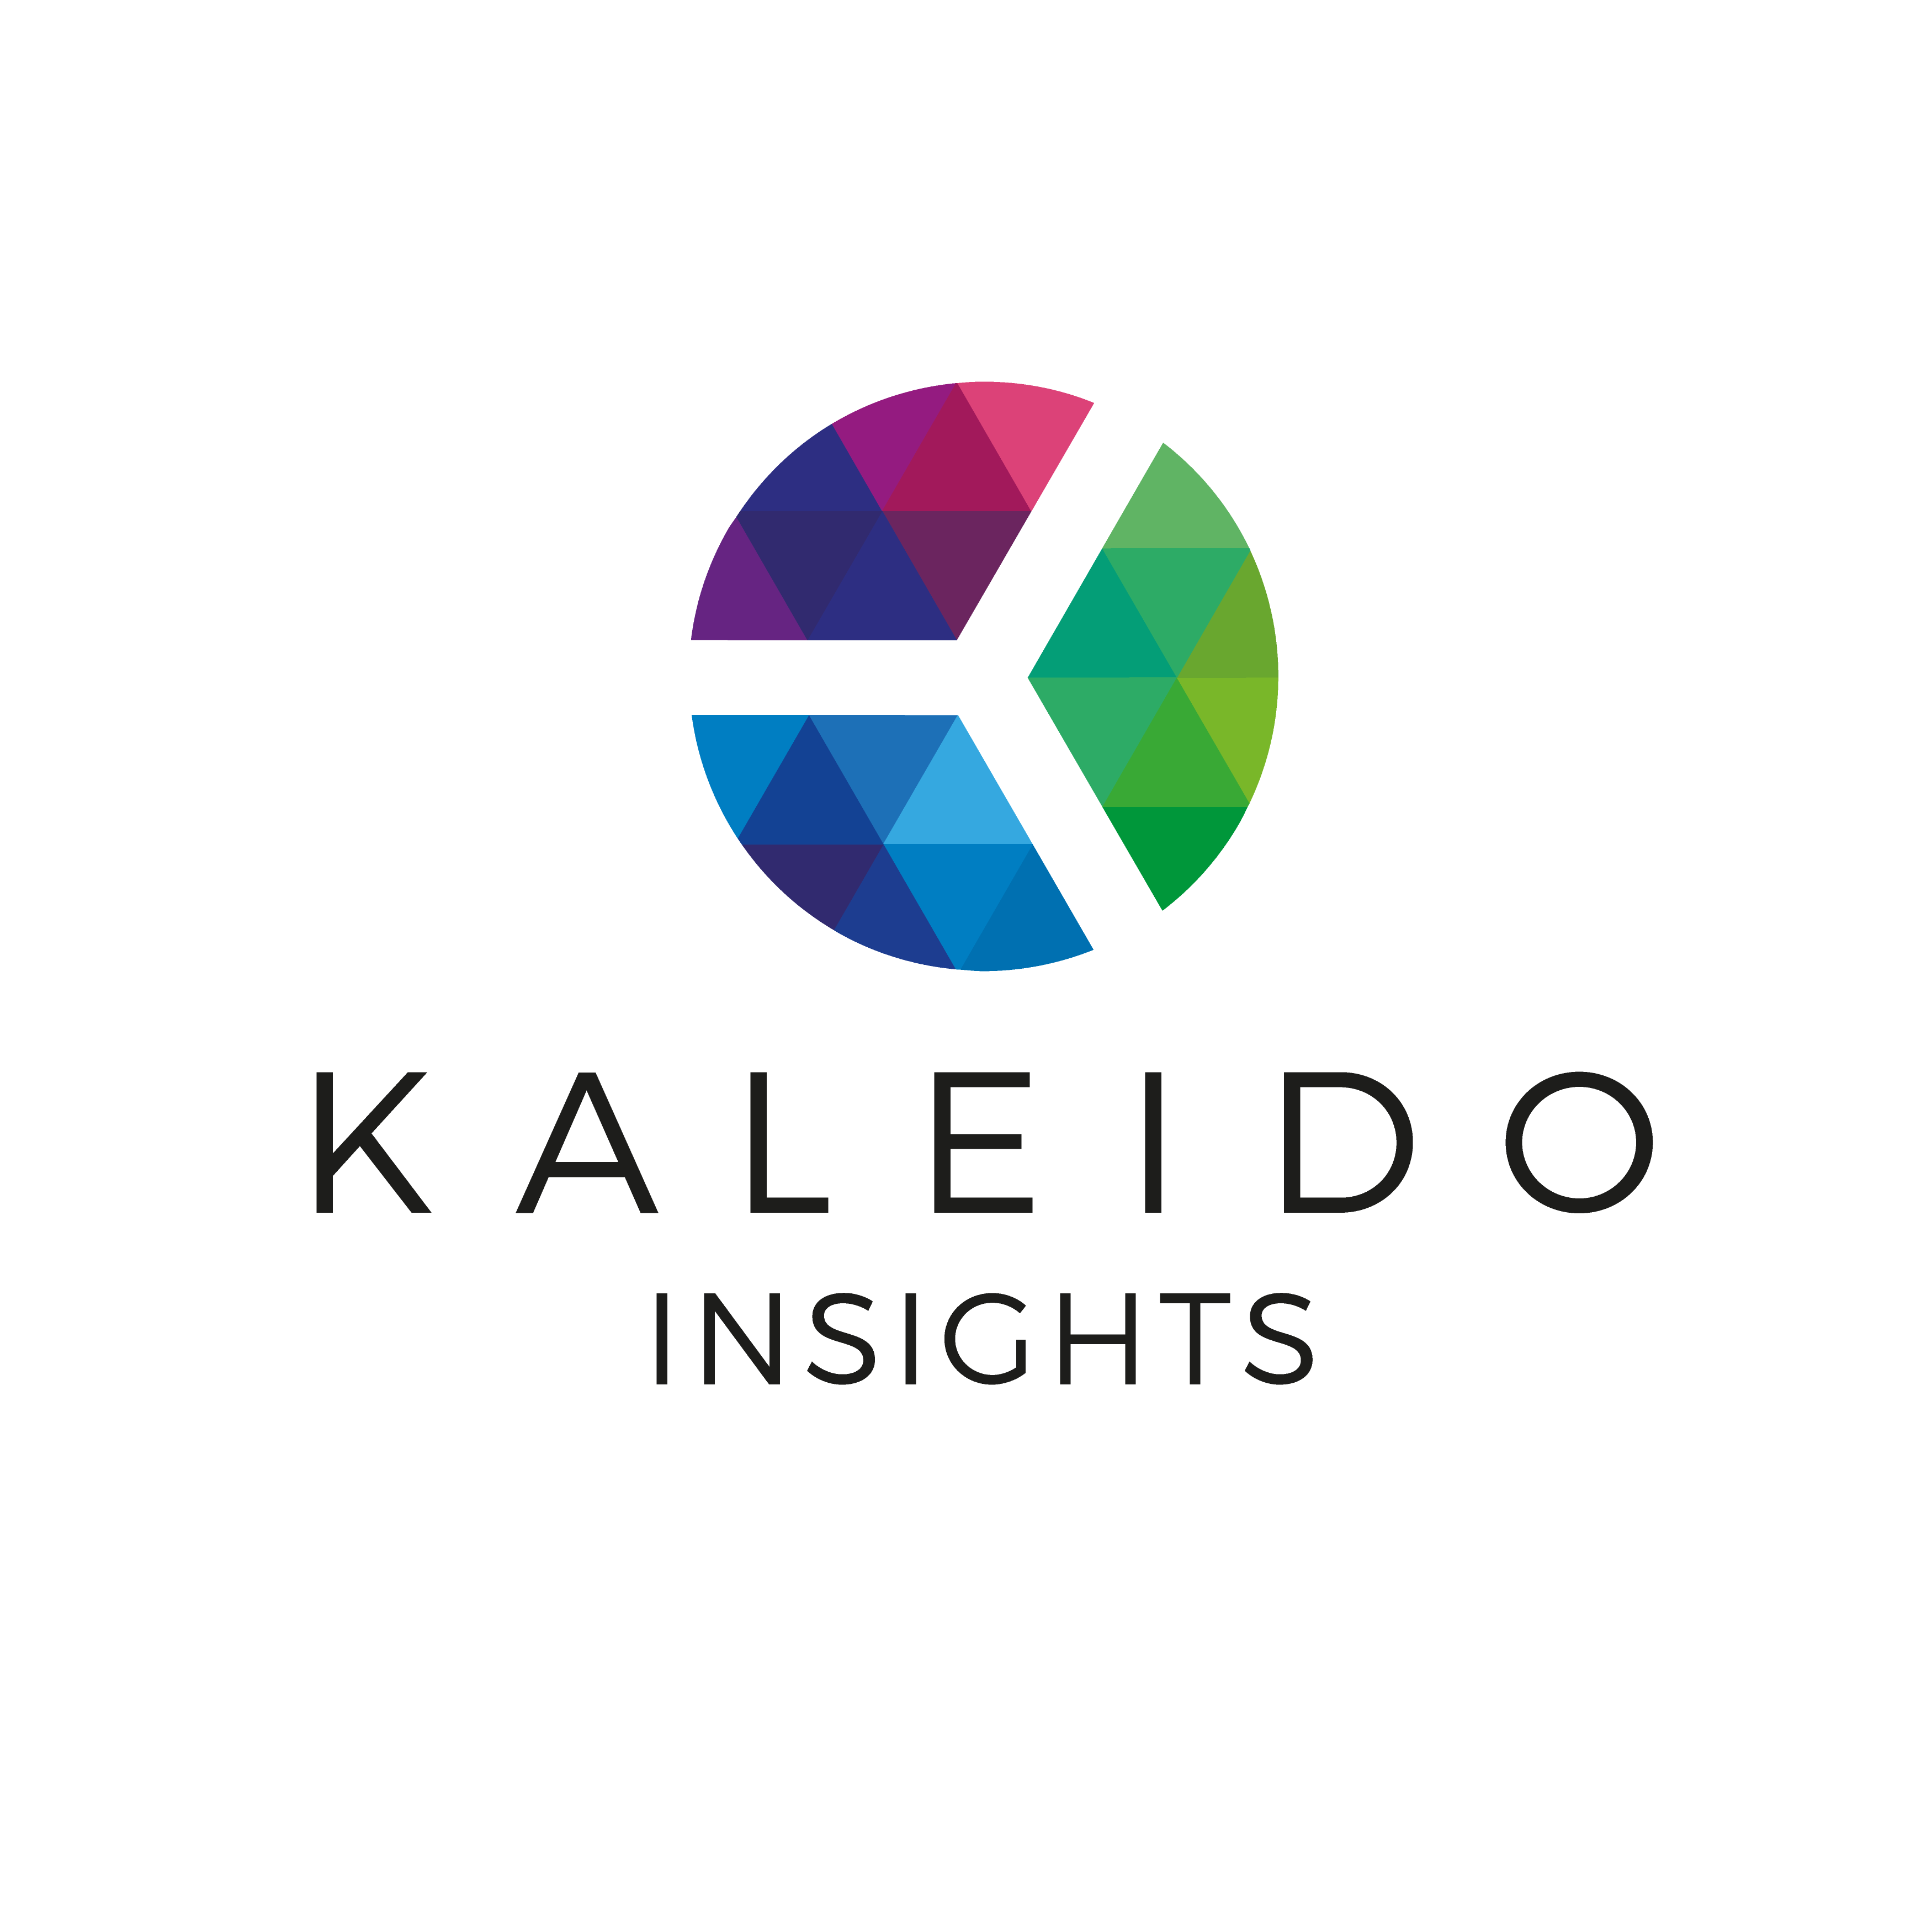 Kaleido Insights Launches, Backed By Superstar Analysts, With Focus On Transformative Trends | DeviceDaily.com